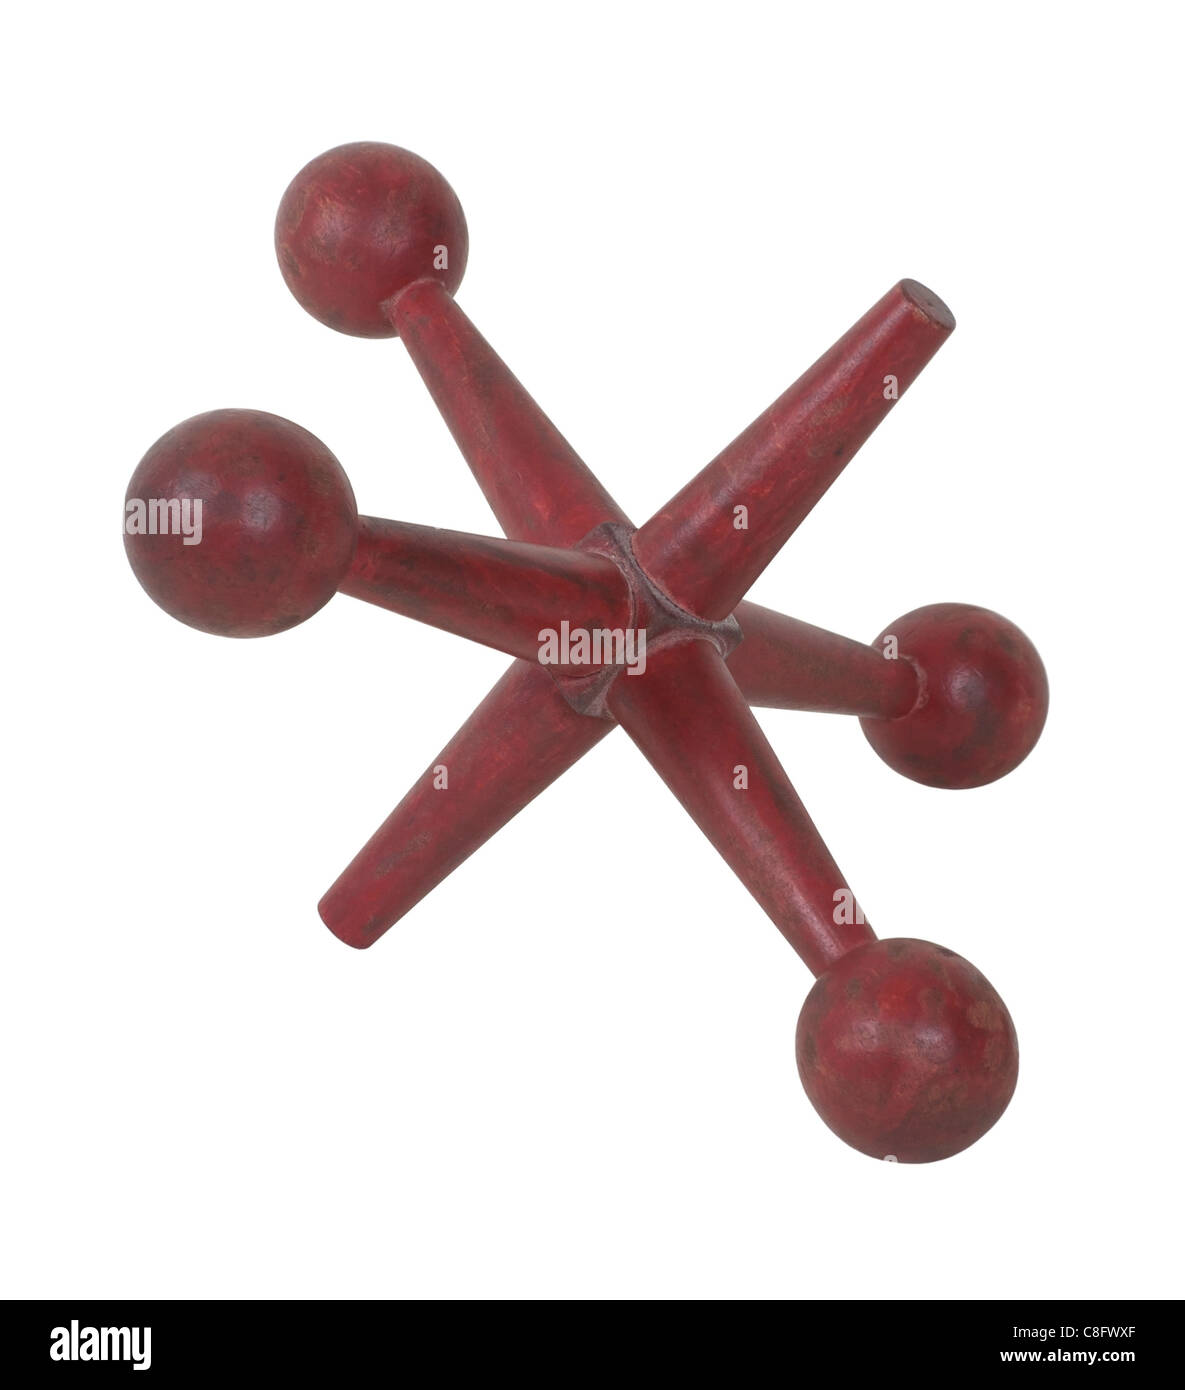 Antique jacks used in a game of dexterity and skill - path included - Stock Image